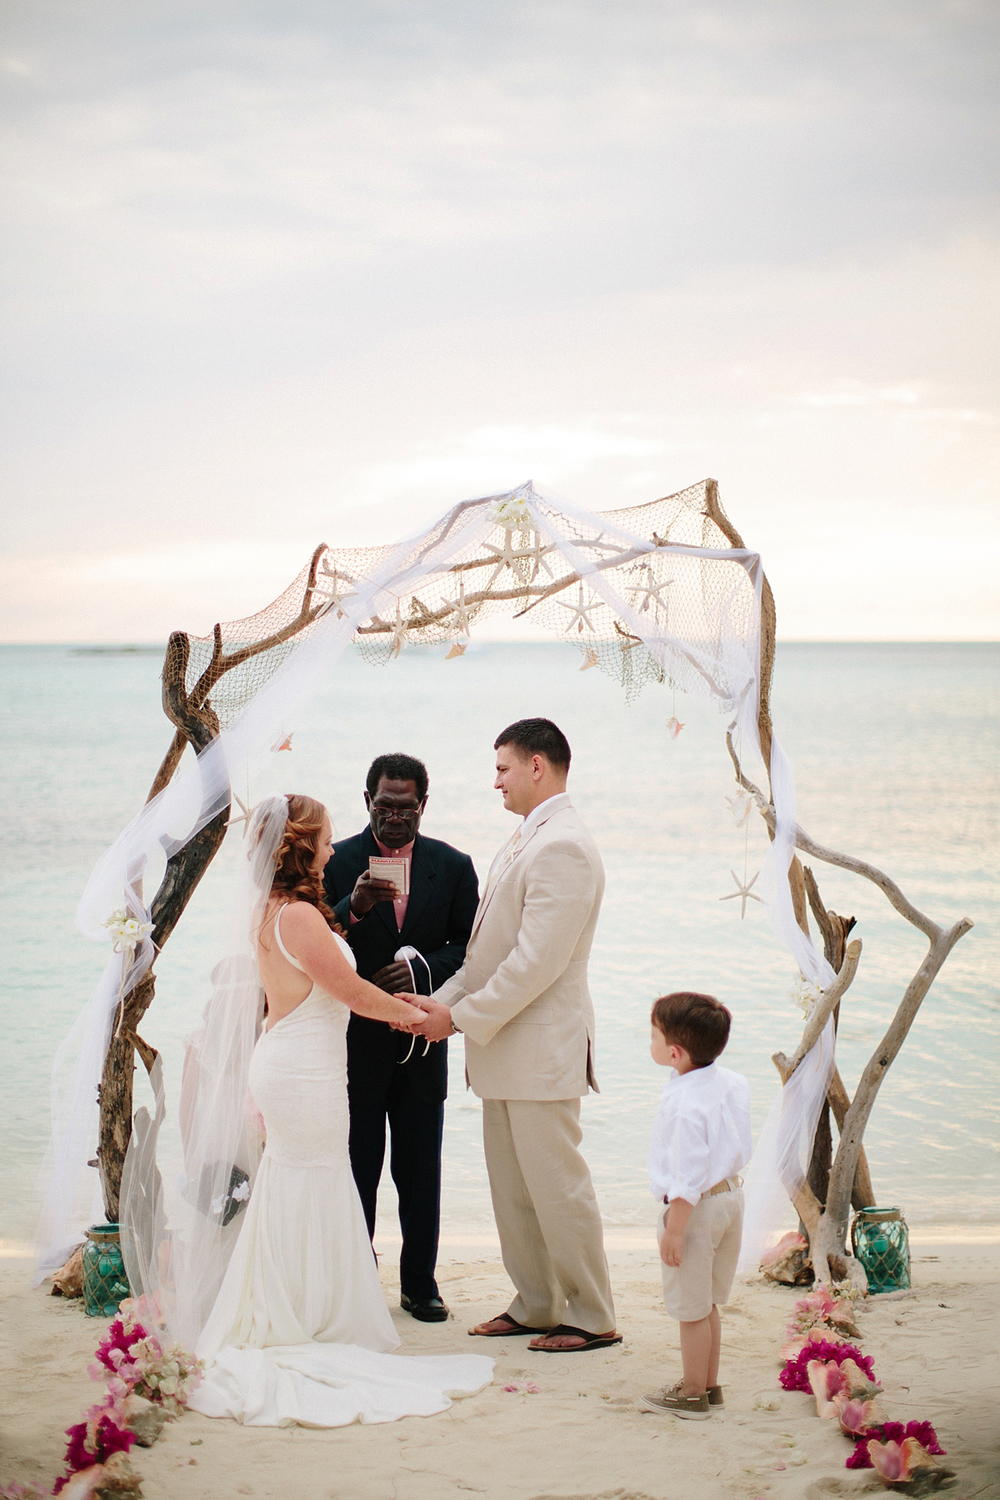 bahamas-destination-wedding-photographer-island-private-ceremony-staniel-cay_0028.jpg